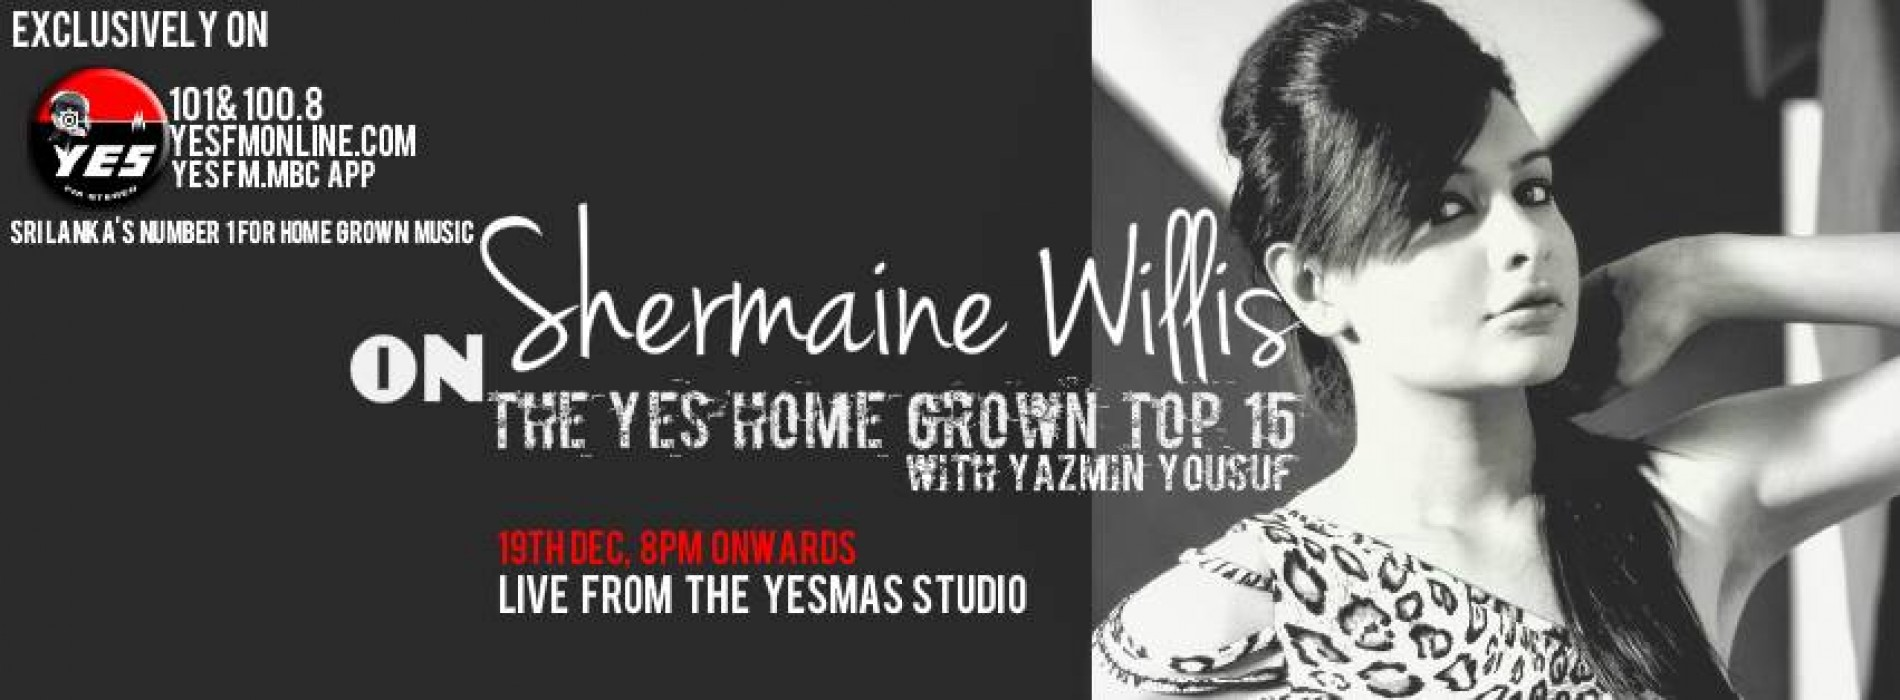 Shermaine Willis On The YES Home Grown Top 15 Tonight